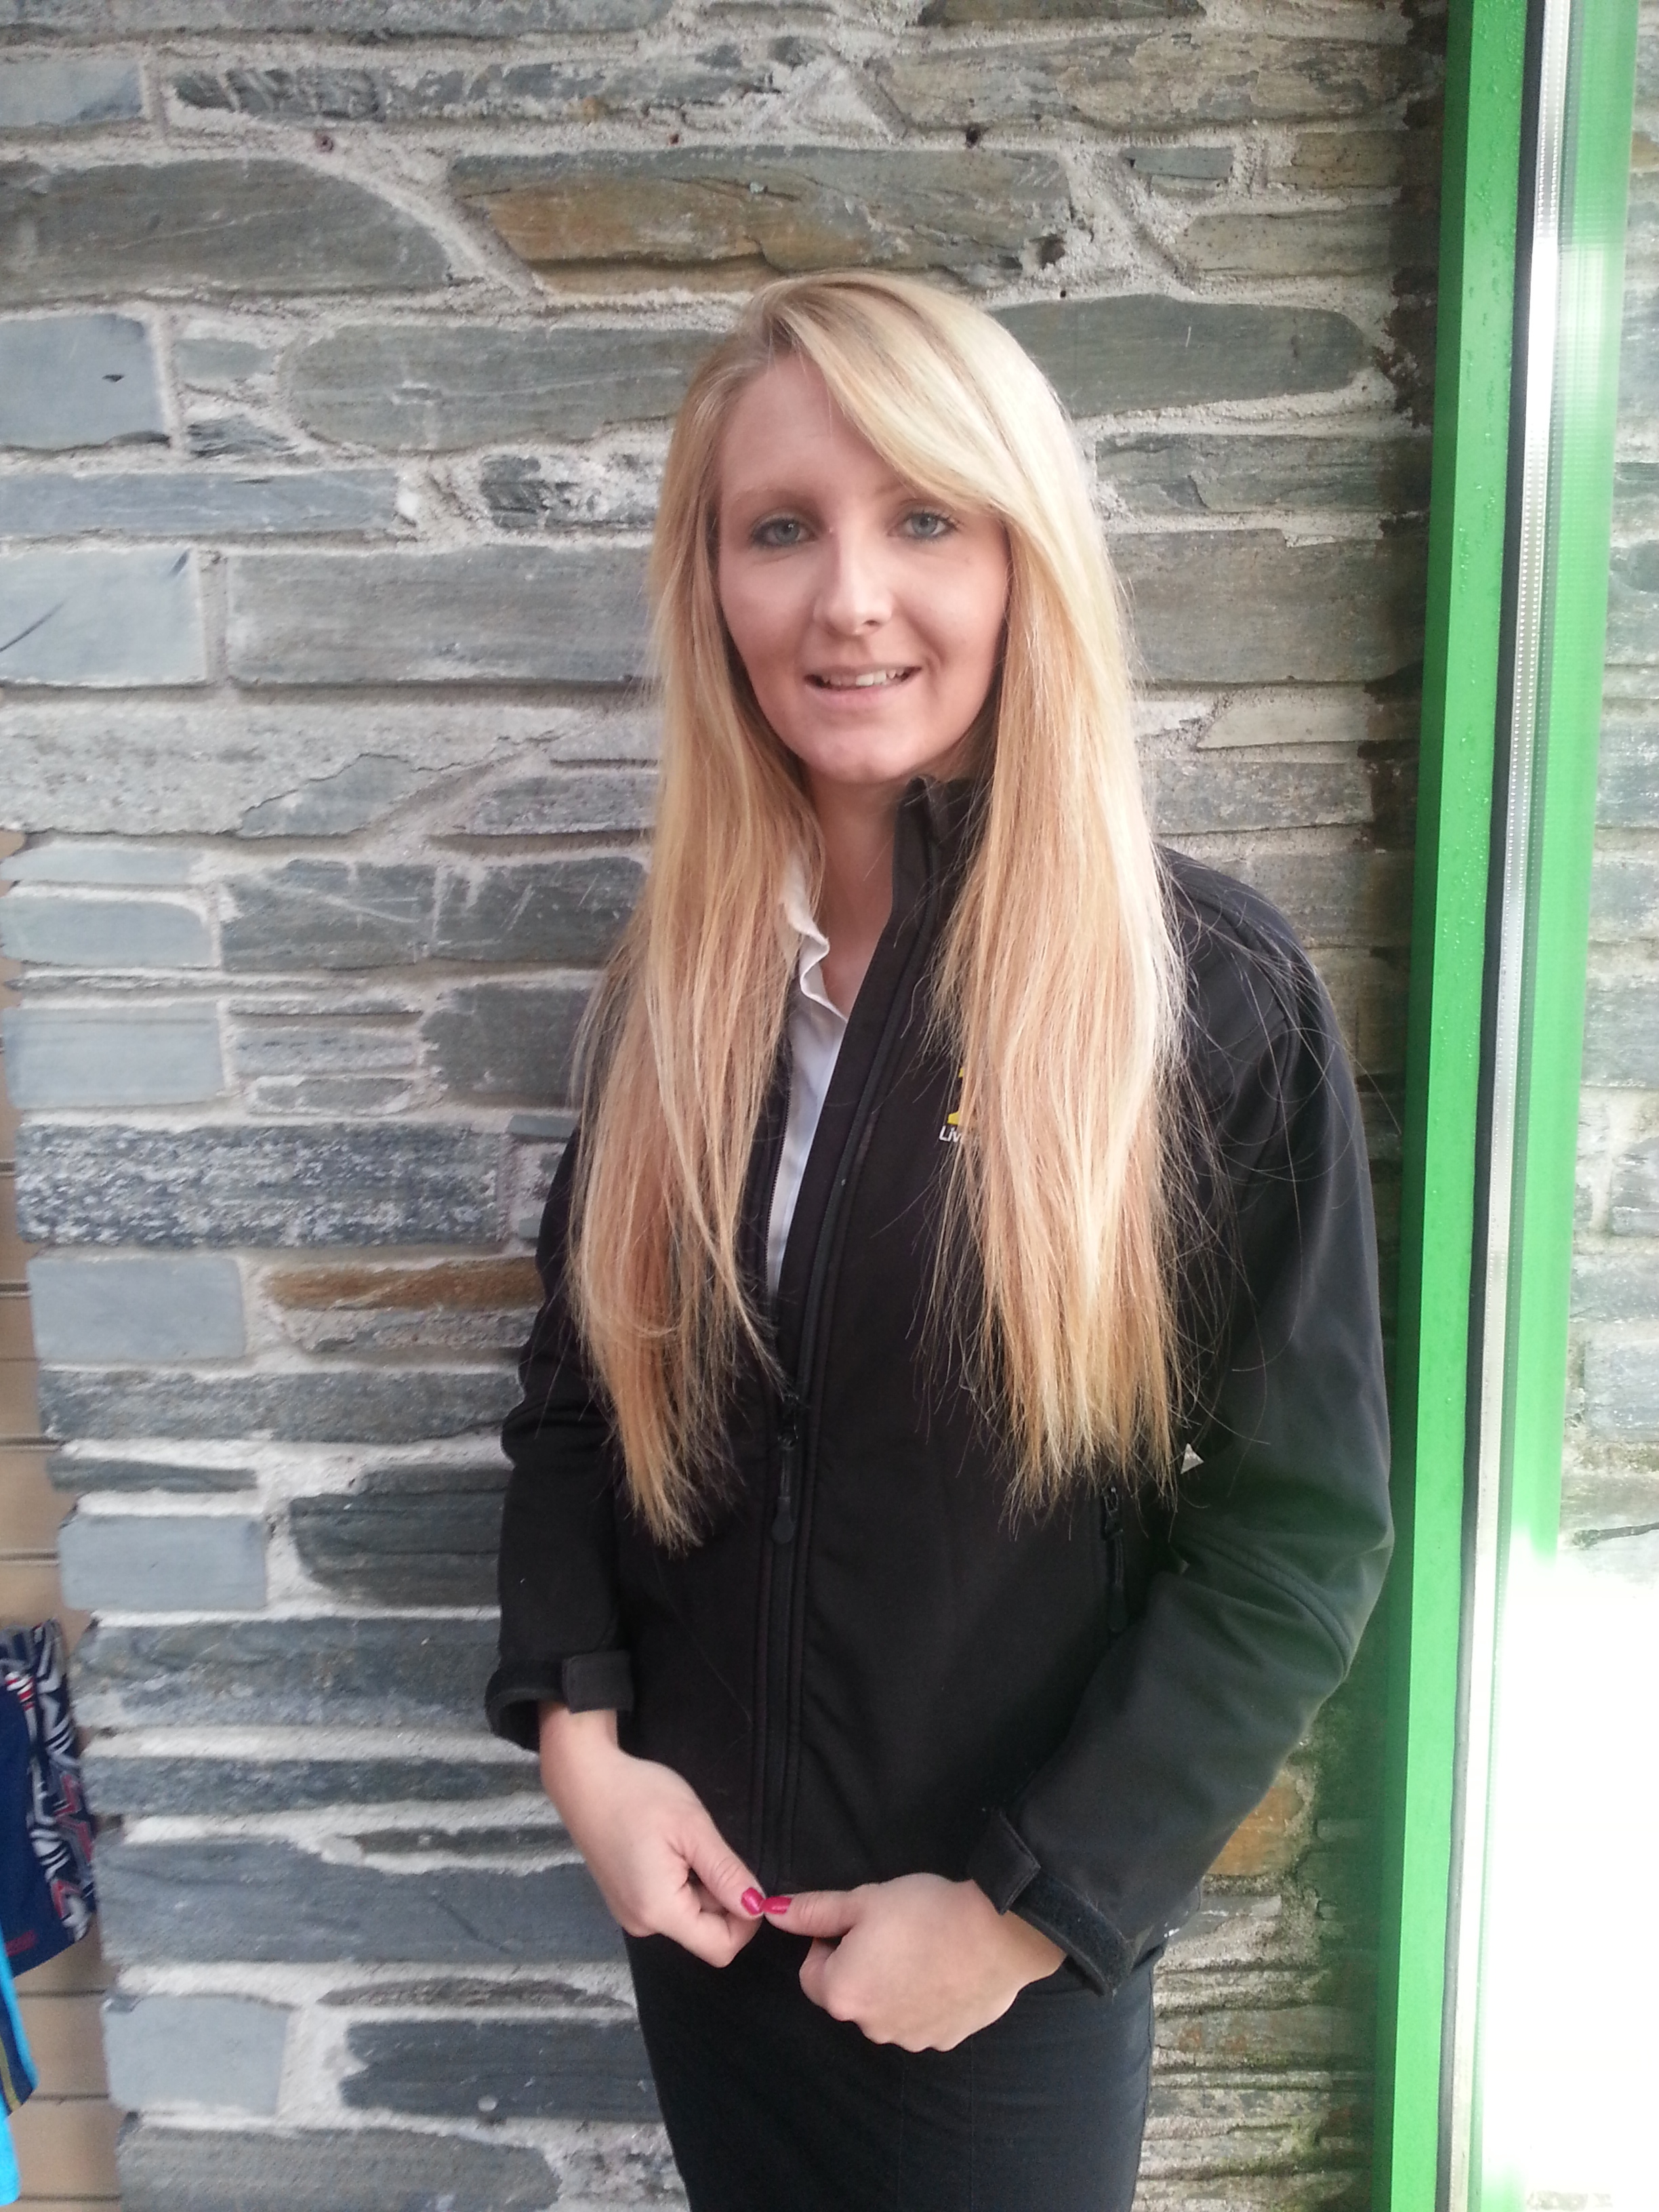 Having previously worked at the pool, Lauren knows the site and local community well.